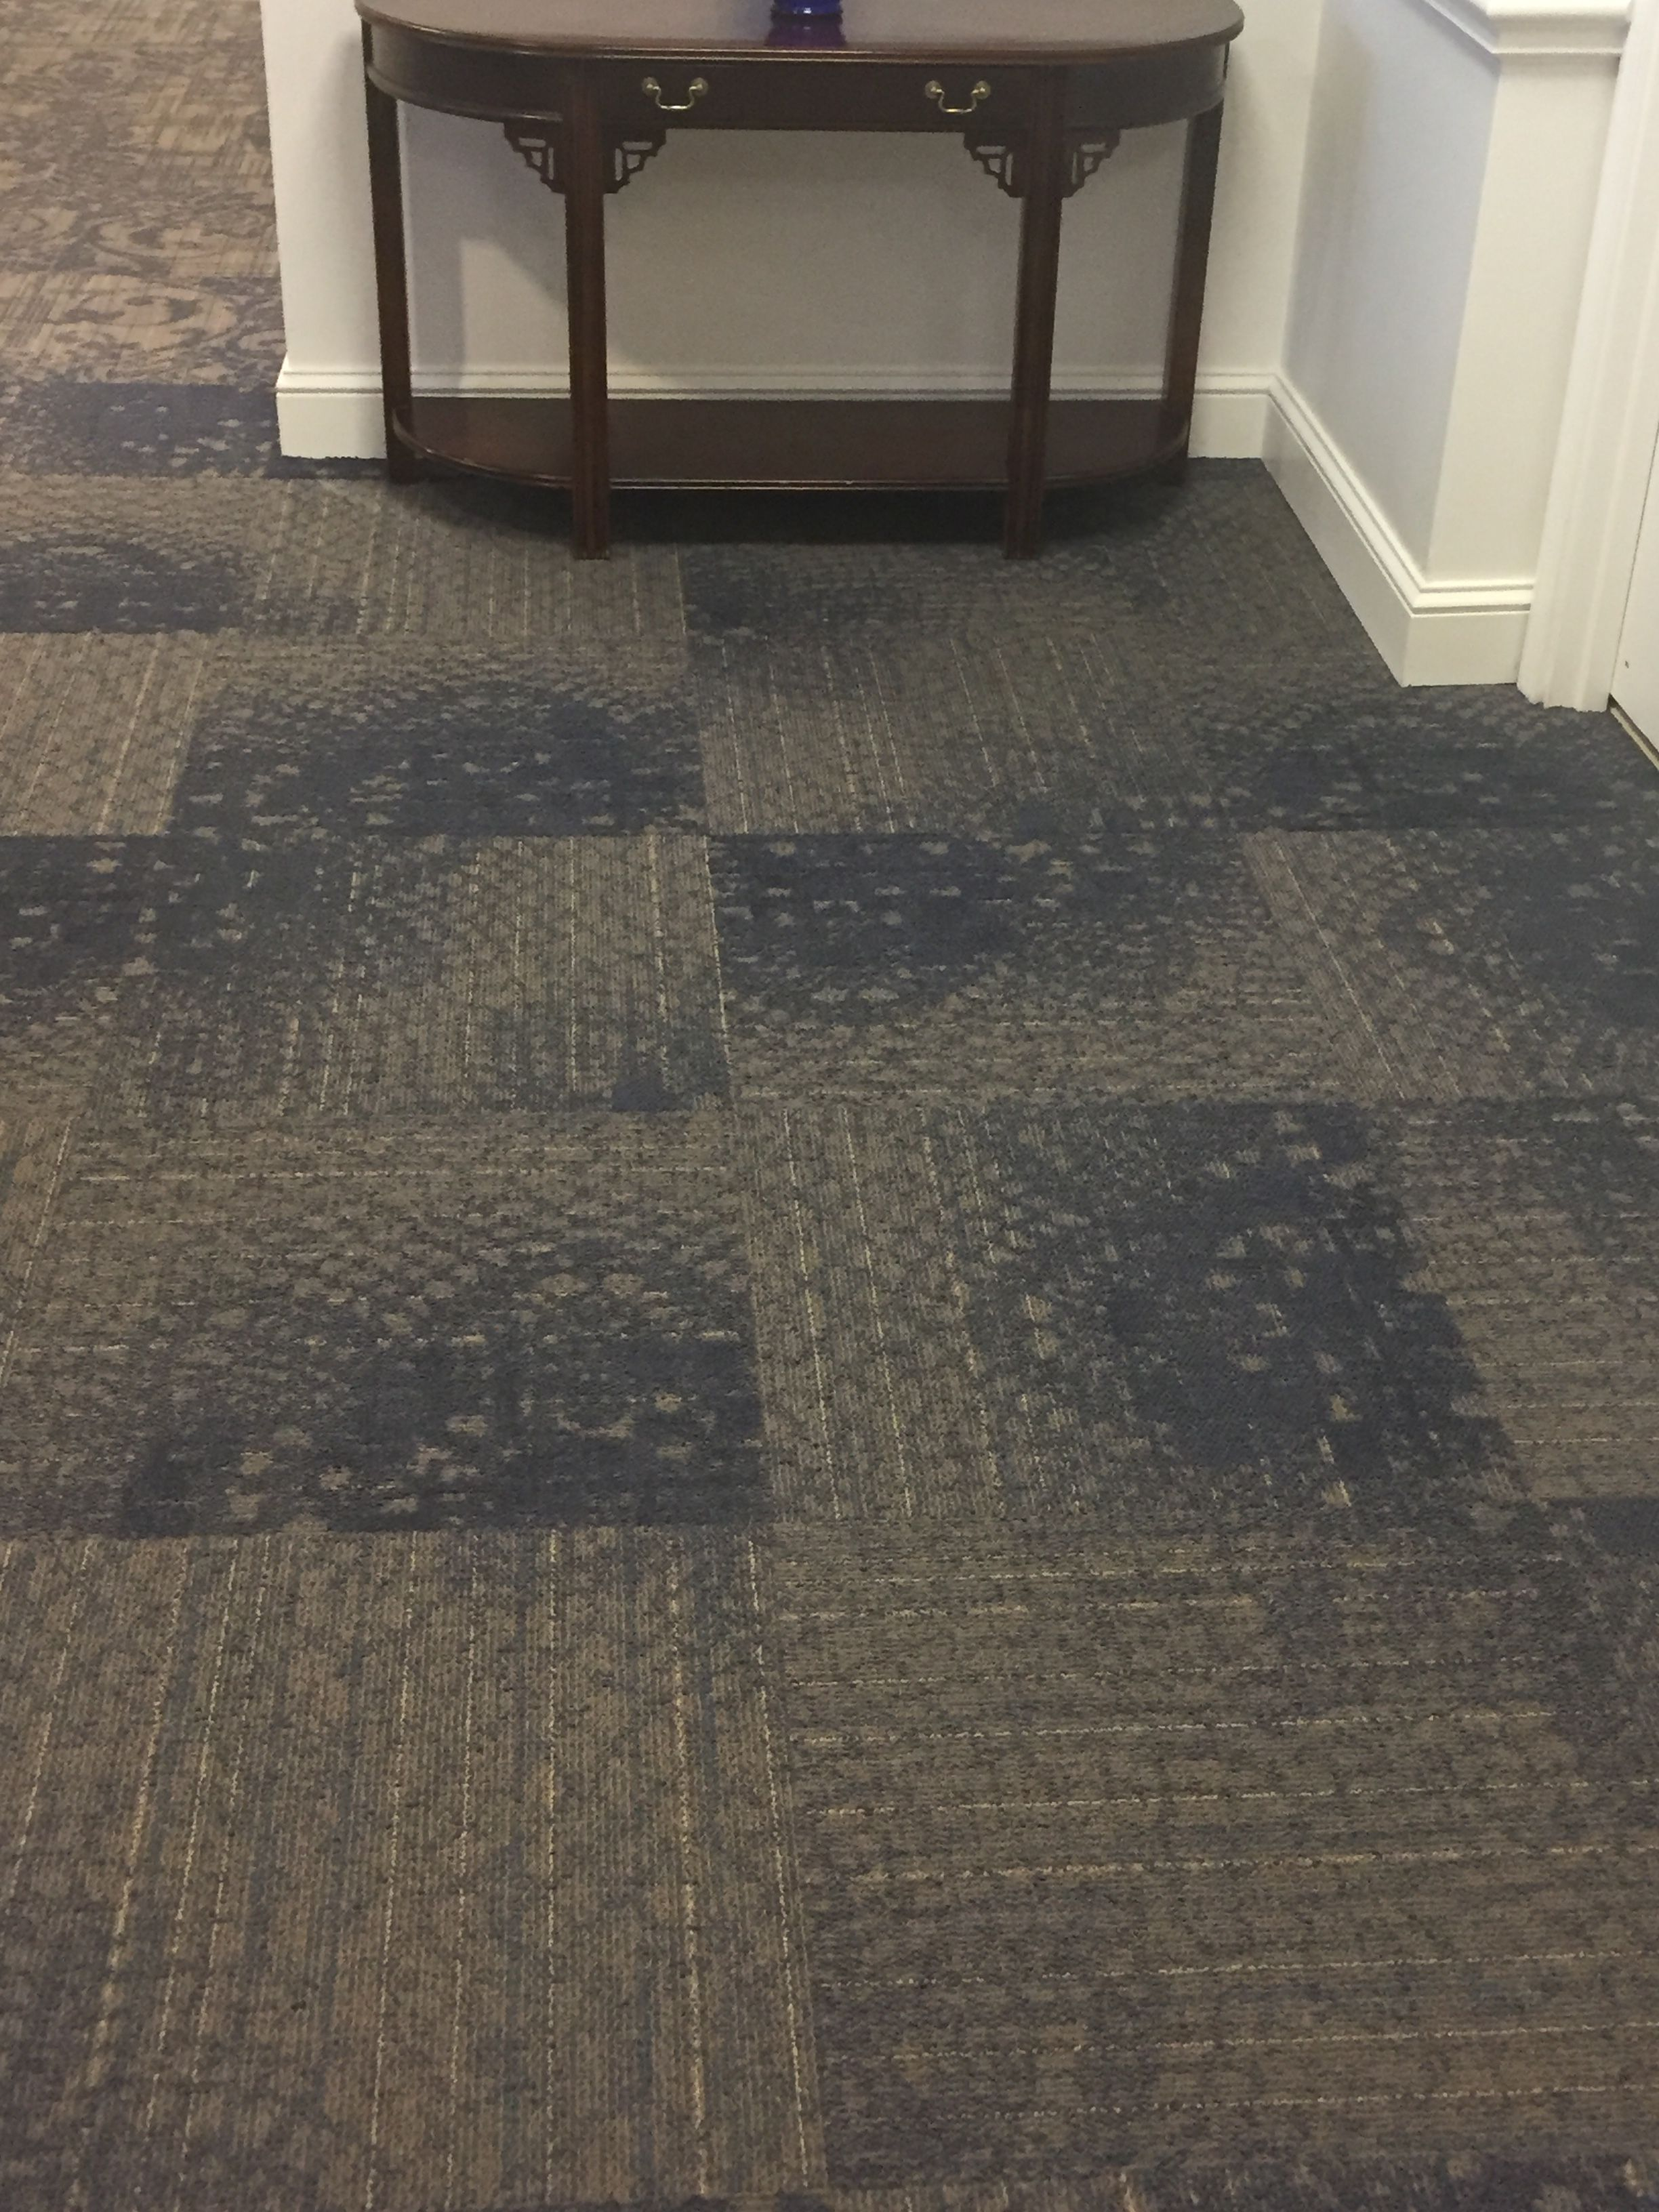 Embellish Carpet Tile By Ef Contract Color 45 Falling Waters Available In 24 X 24 And 12 Wide Broadloom Tile Shown Flooring Carpet Tiles Tree Carving